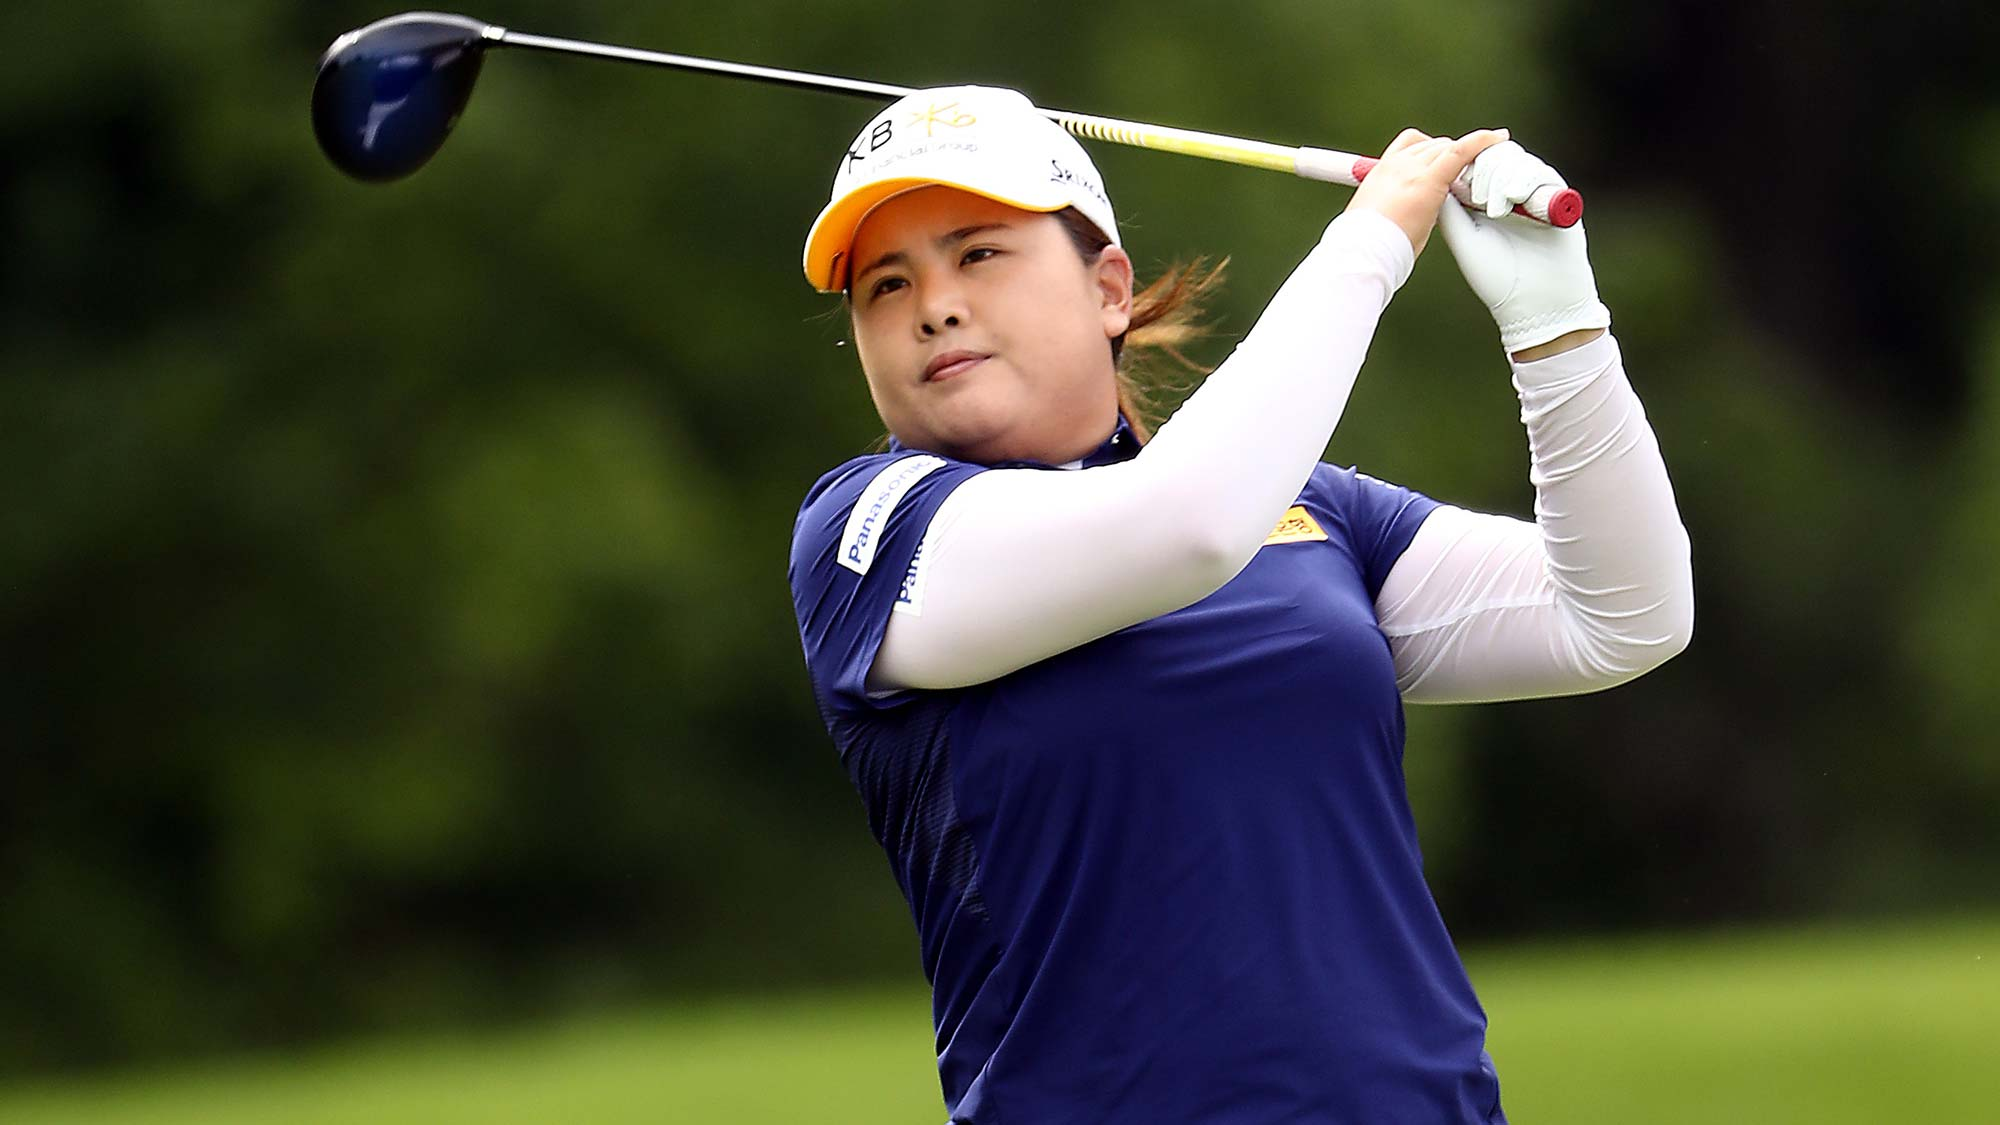 Inbee Park of Korea hits her first shot on the 15th hole during the first round of the KPMG Women's PGA Championship